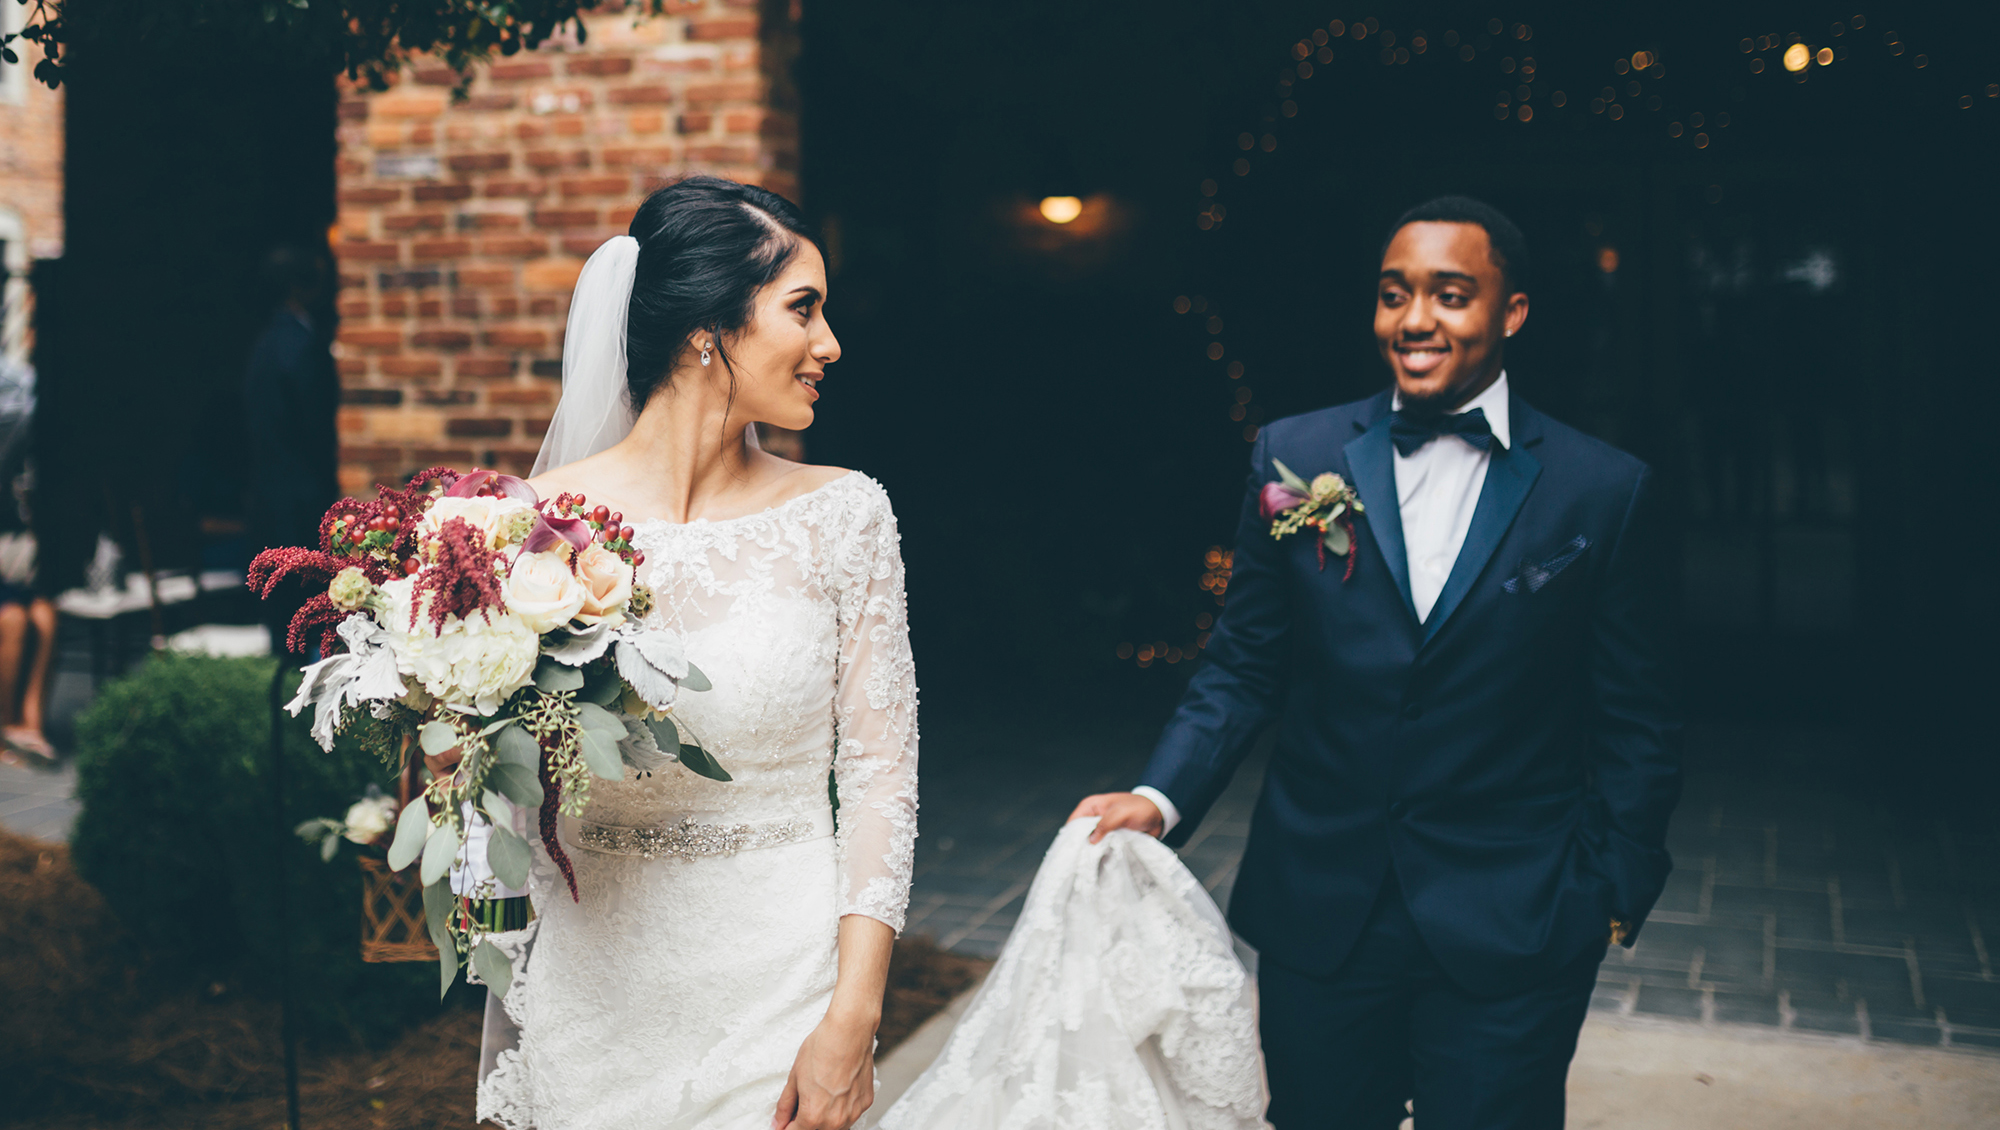 Macon Wedding Venue | The Blacksmith Shop | Macon Urban Venue